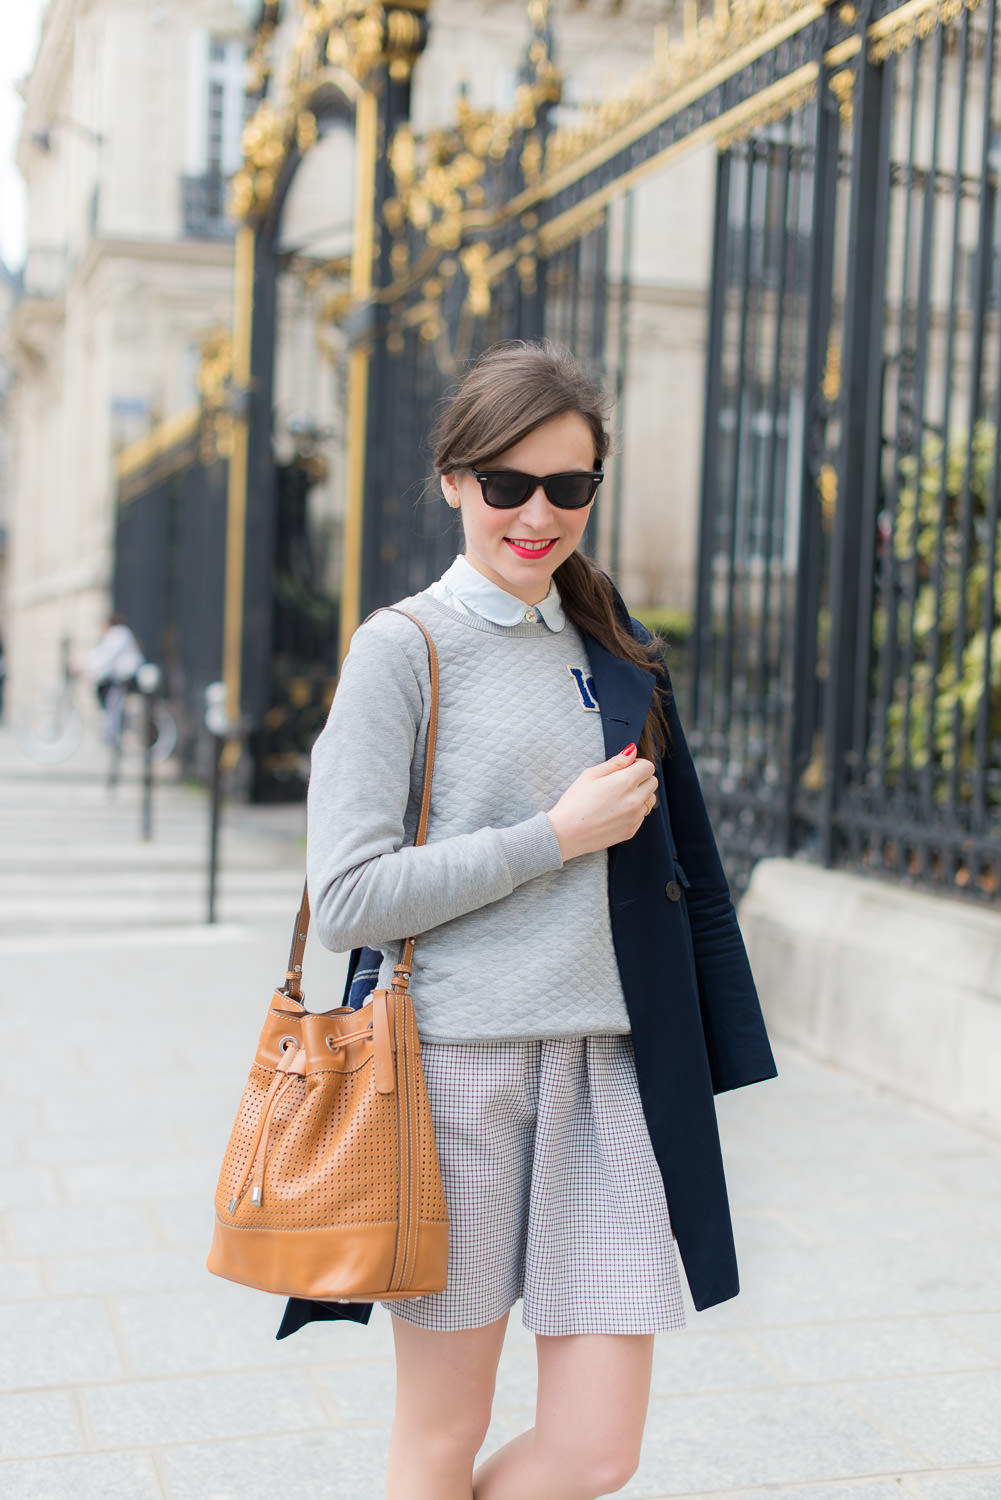 Blog-mode-Mode-And-The-City-looks-collaboration-clarks-orla-kiely (9 sur 11)